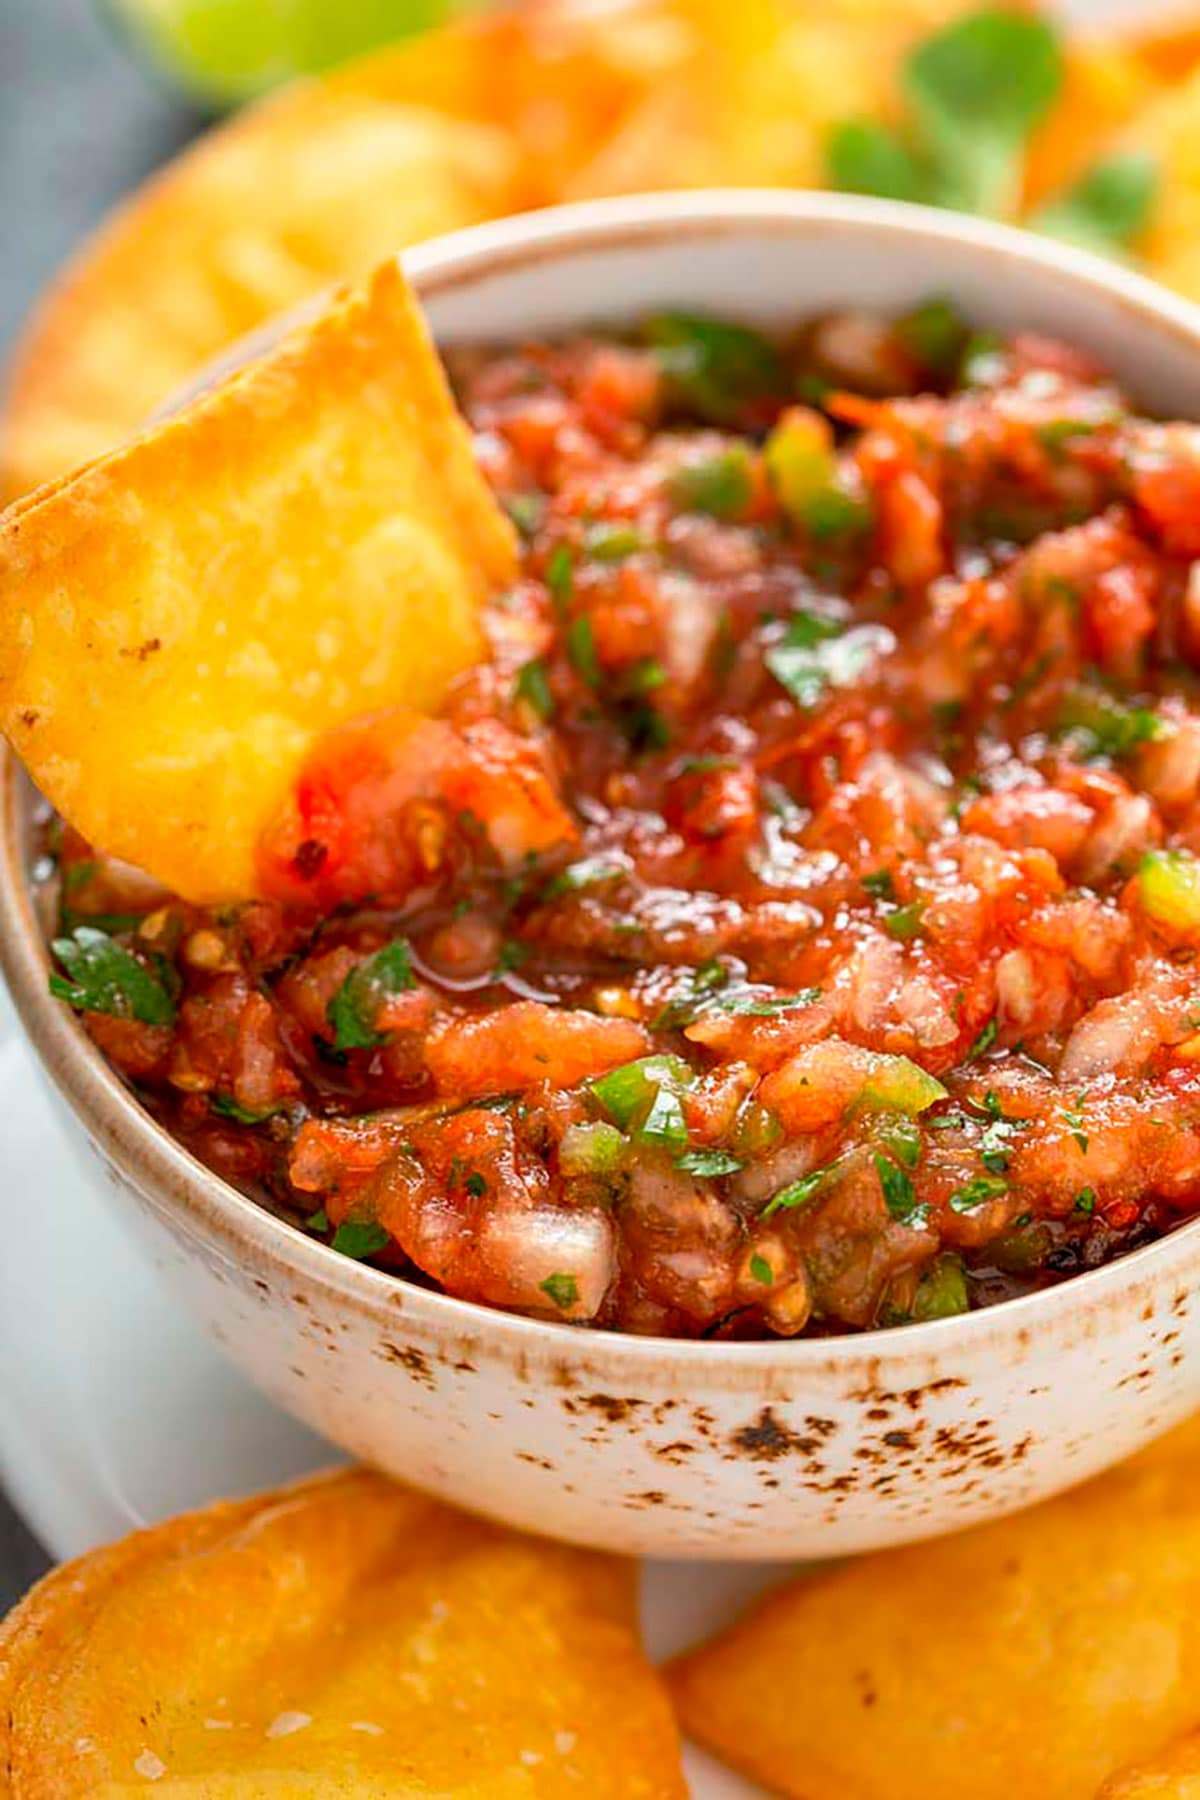 A bowl of homemade salsa with chips